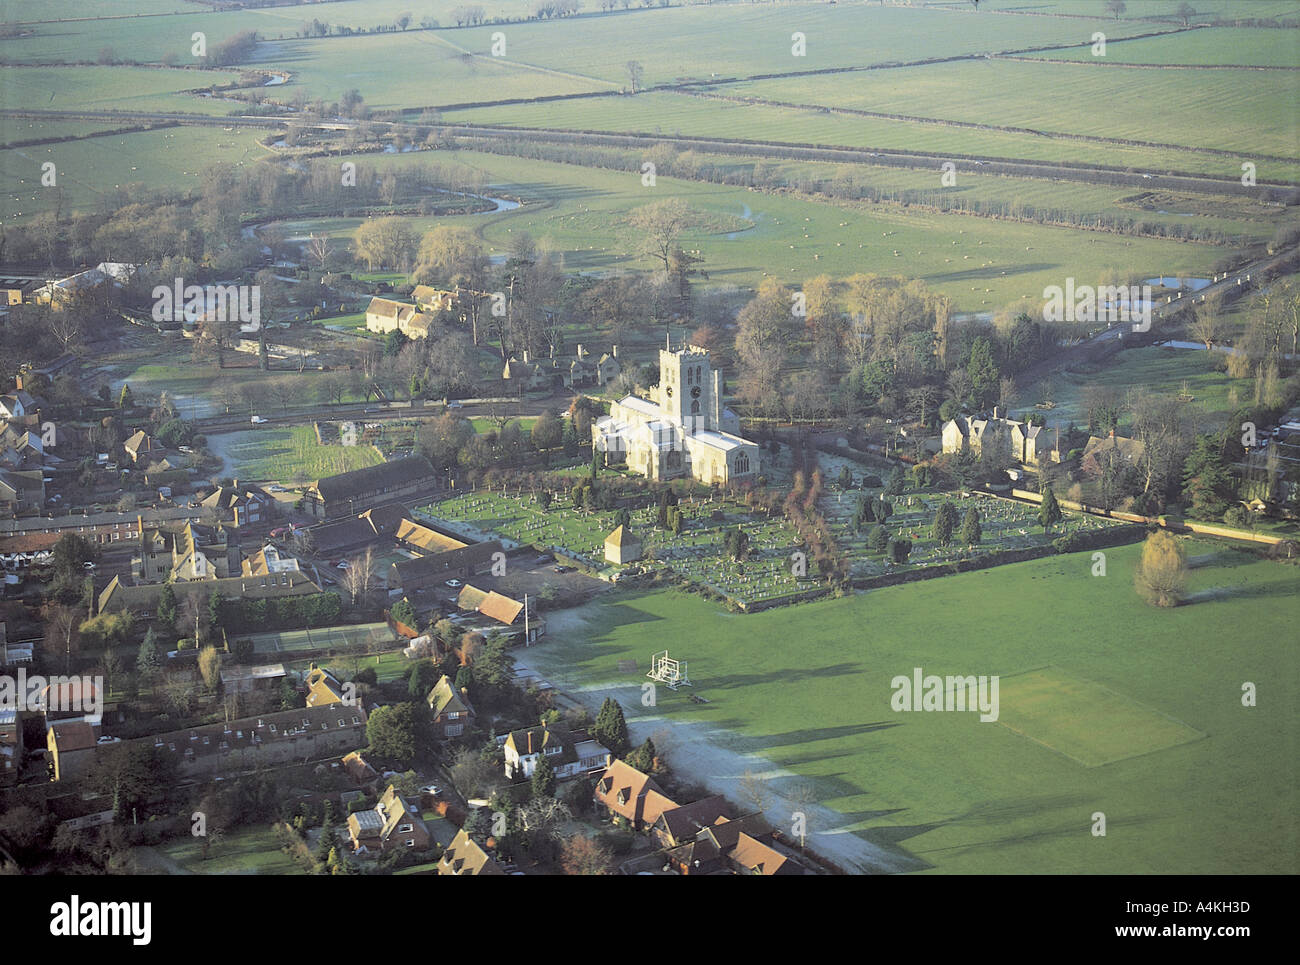 Aerial view of St Marys Church, Thame, Oxfordshire - Stock Image